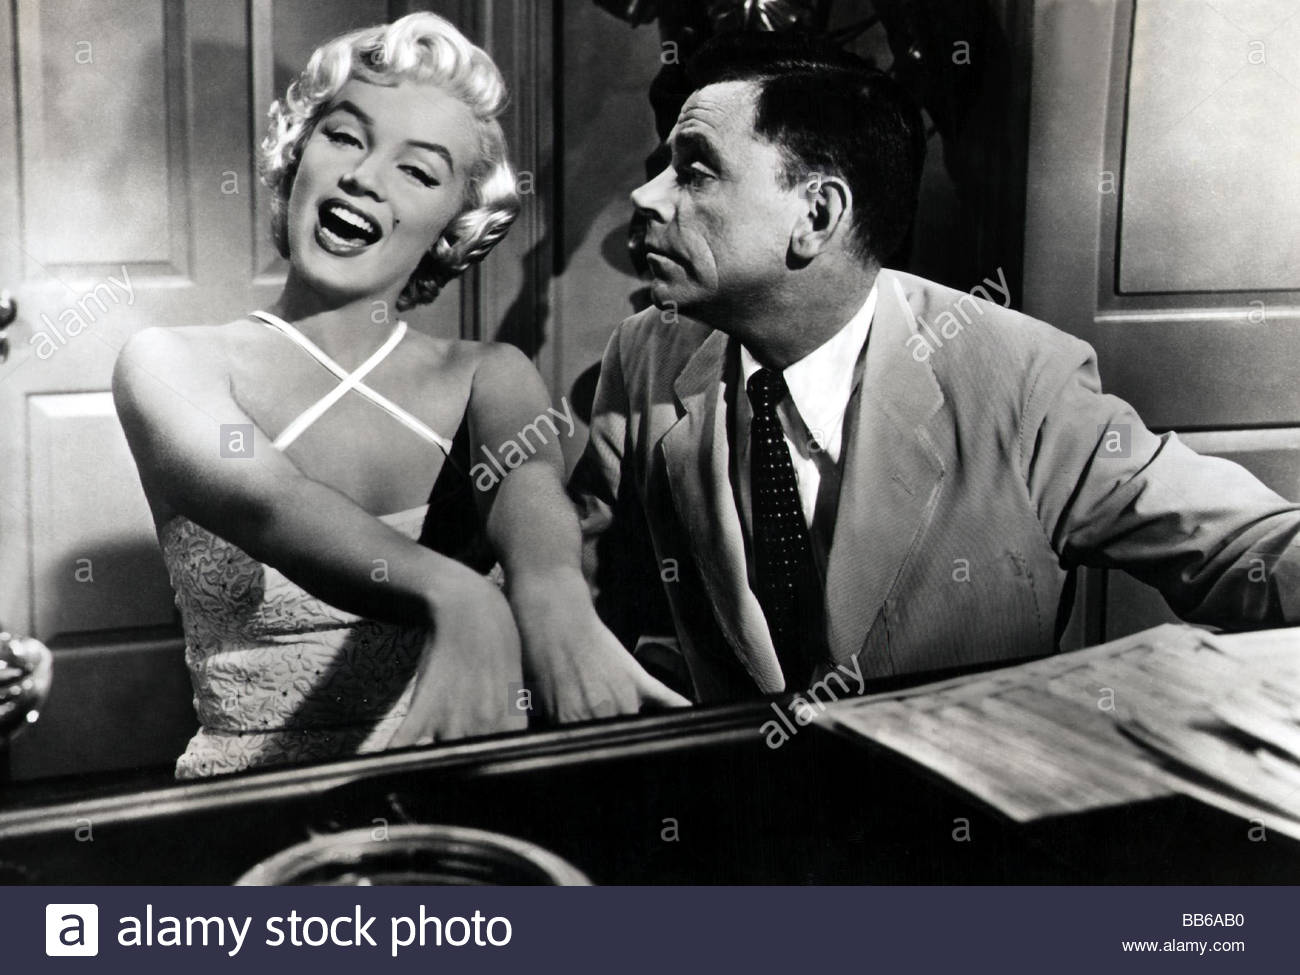 Incredible Movie The Seven Year Itch Usa 1955 Director Billy Wilder Hairstyles For Women Draintrainus